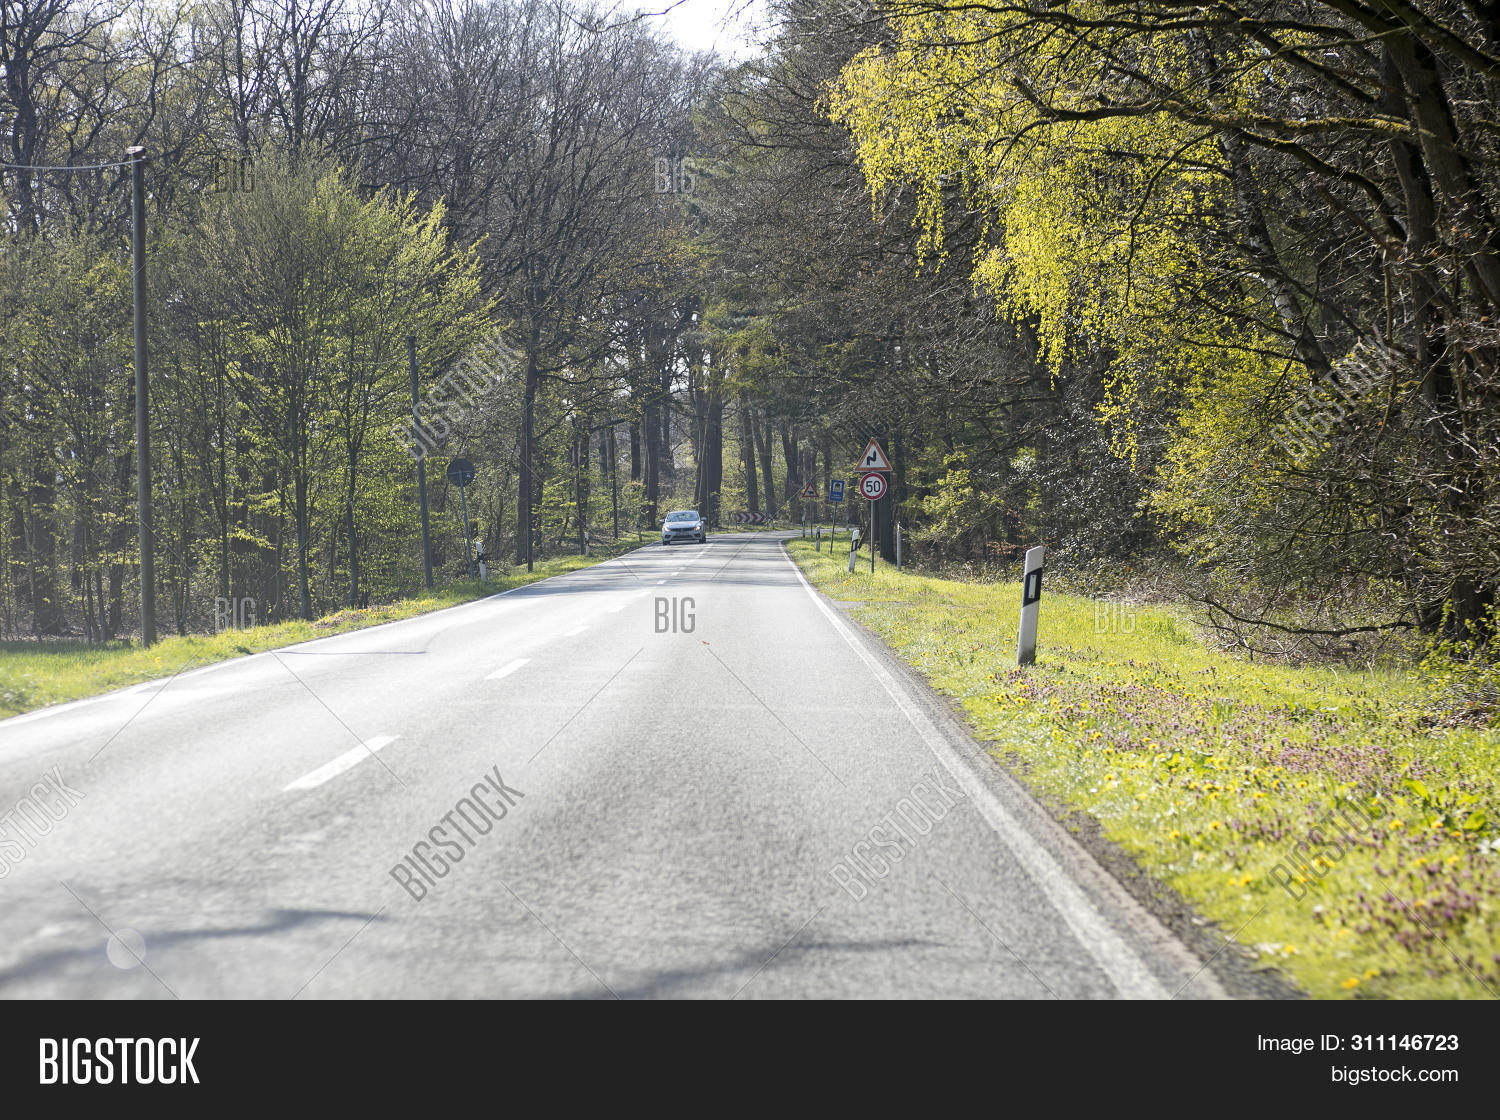 Empty Road Trees Image Photo Free Trial Bigstock Images, Photos, Reviews